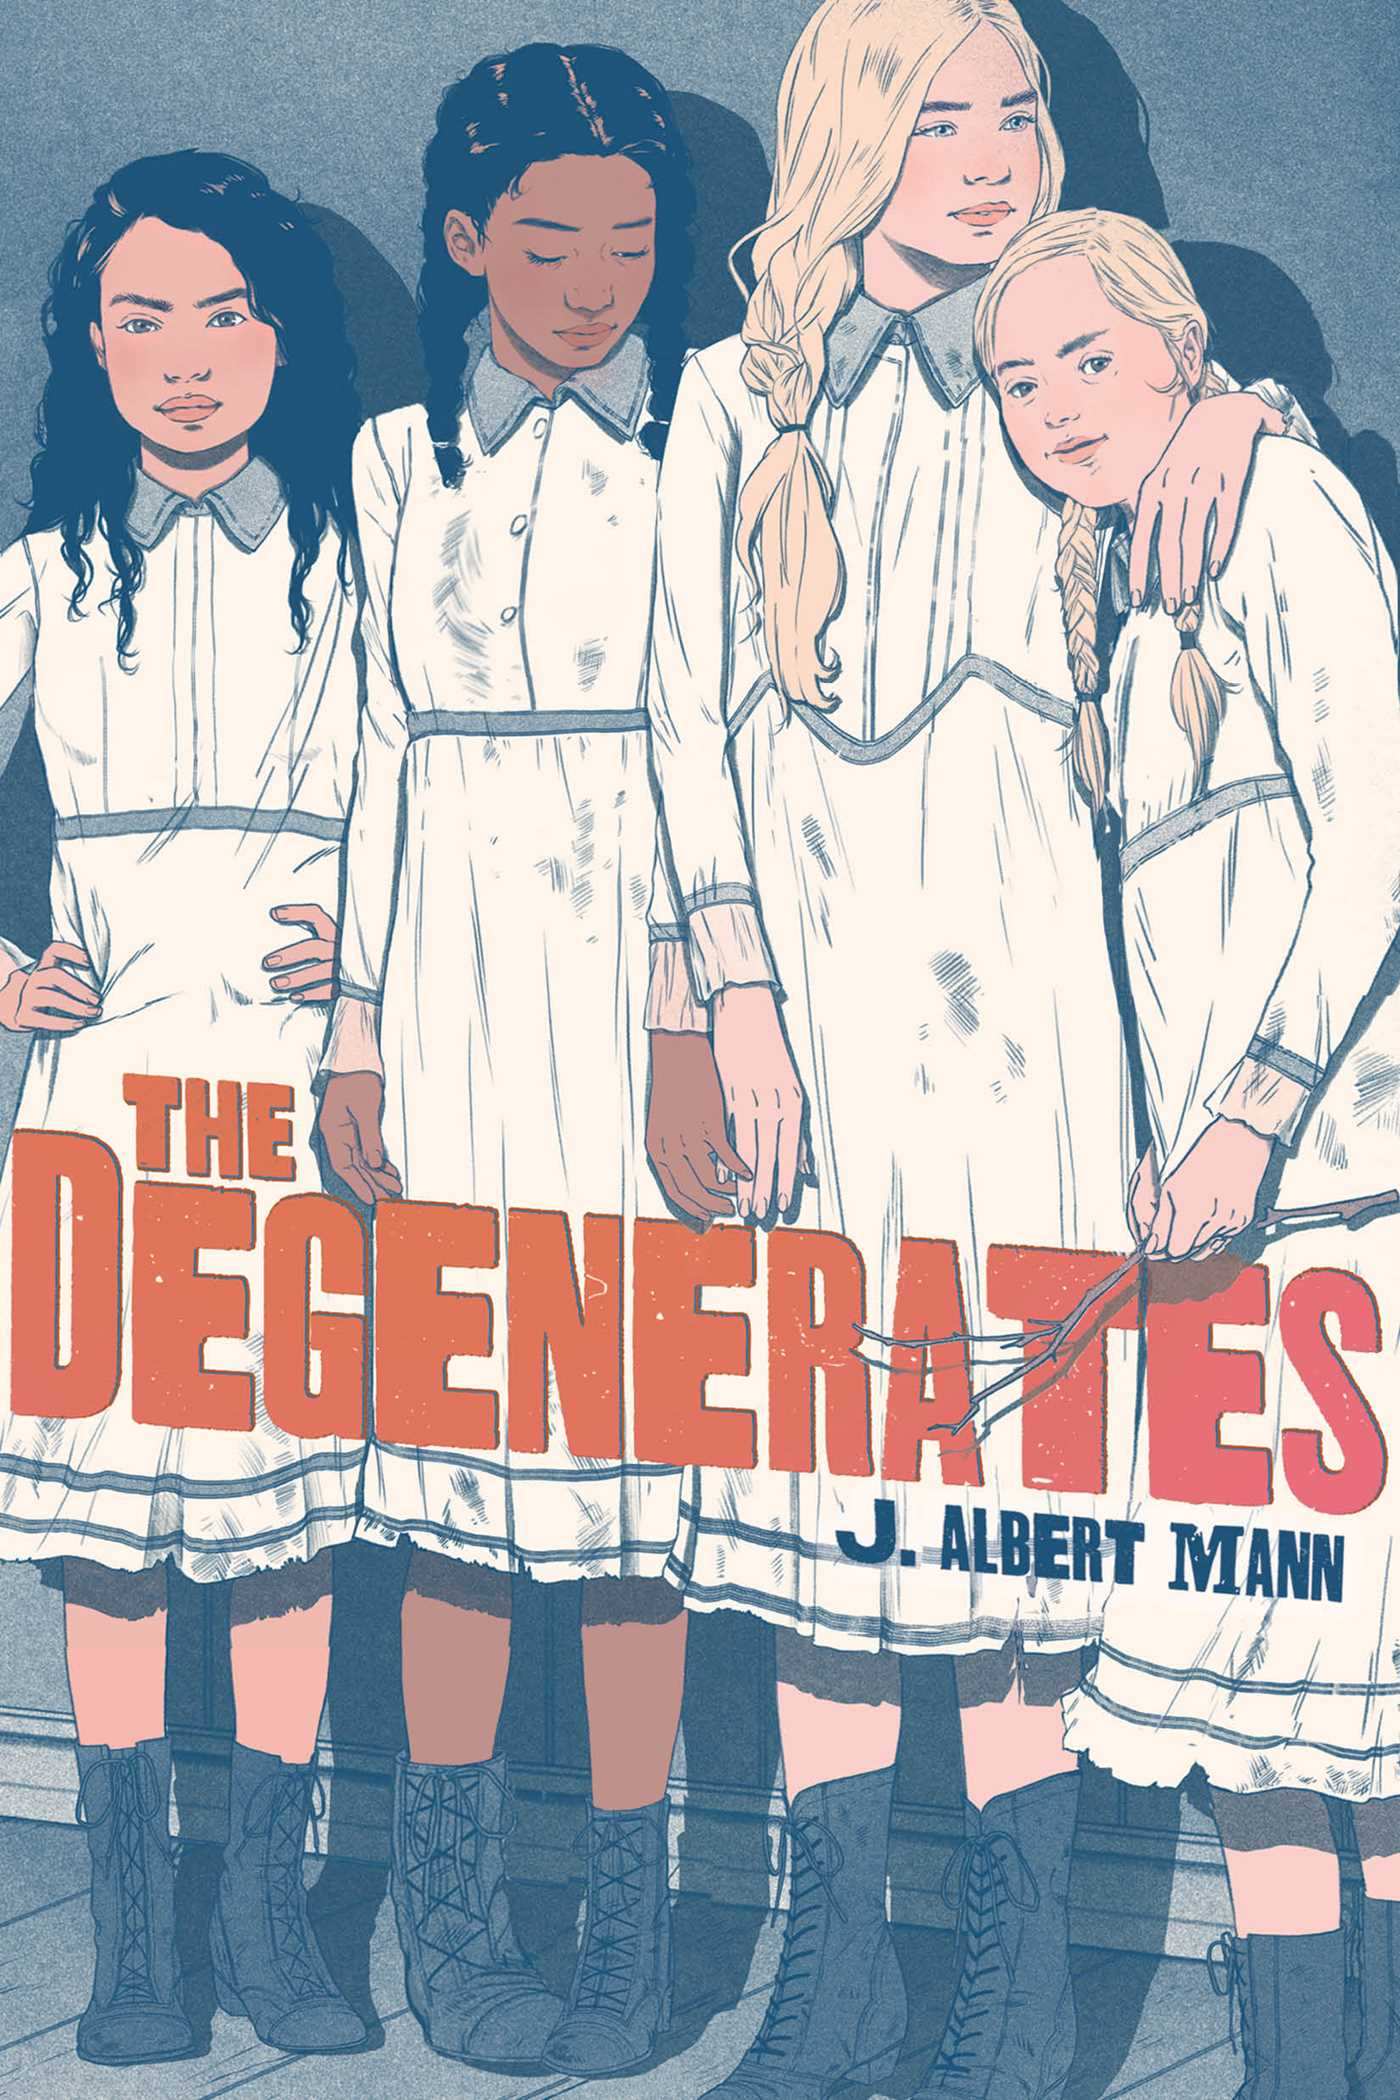 The Degenerates - J. Albert Mann